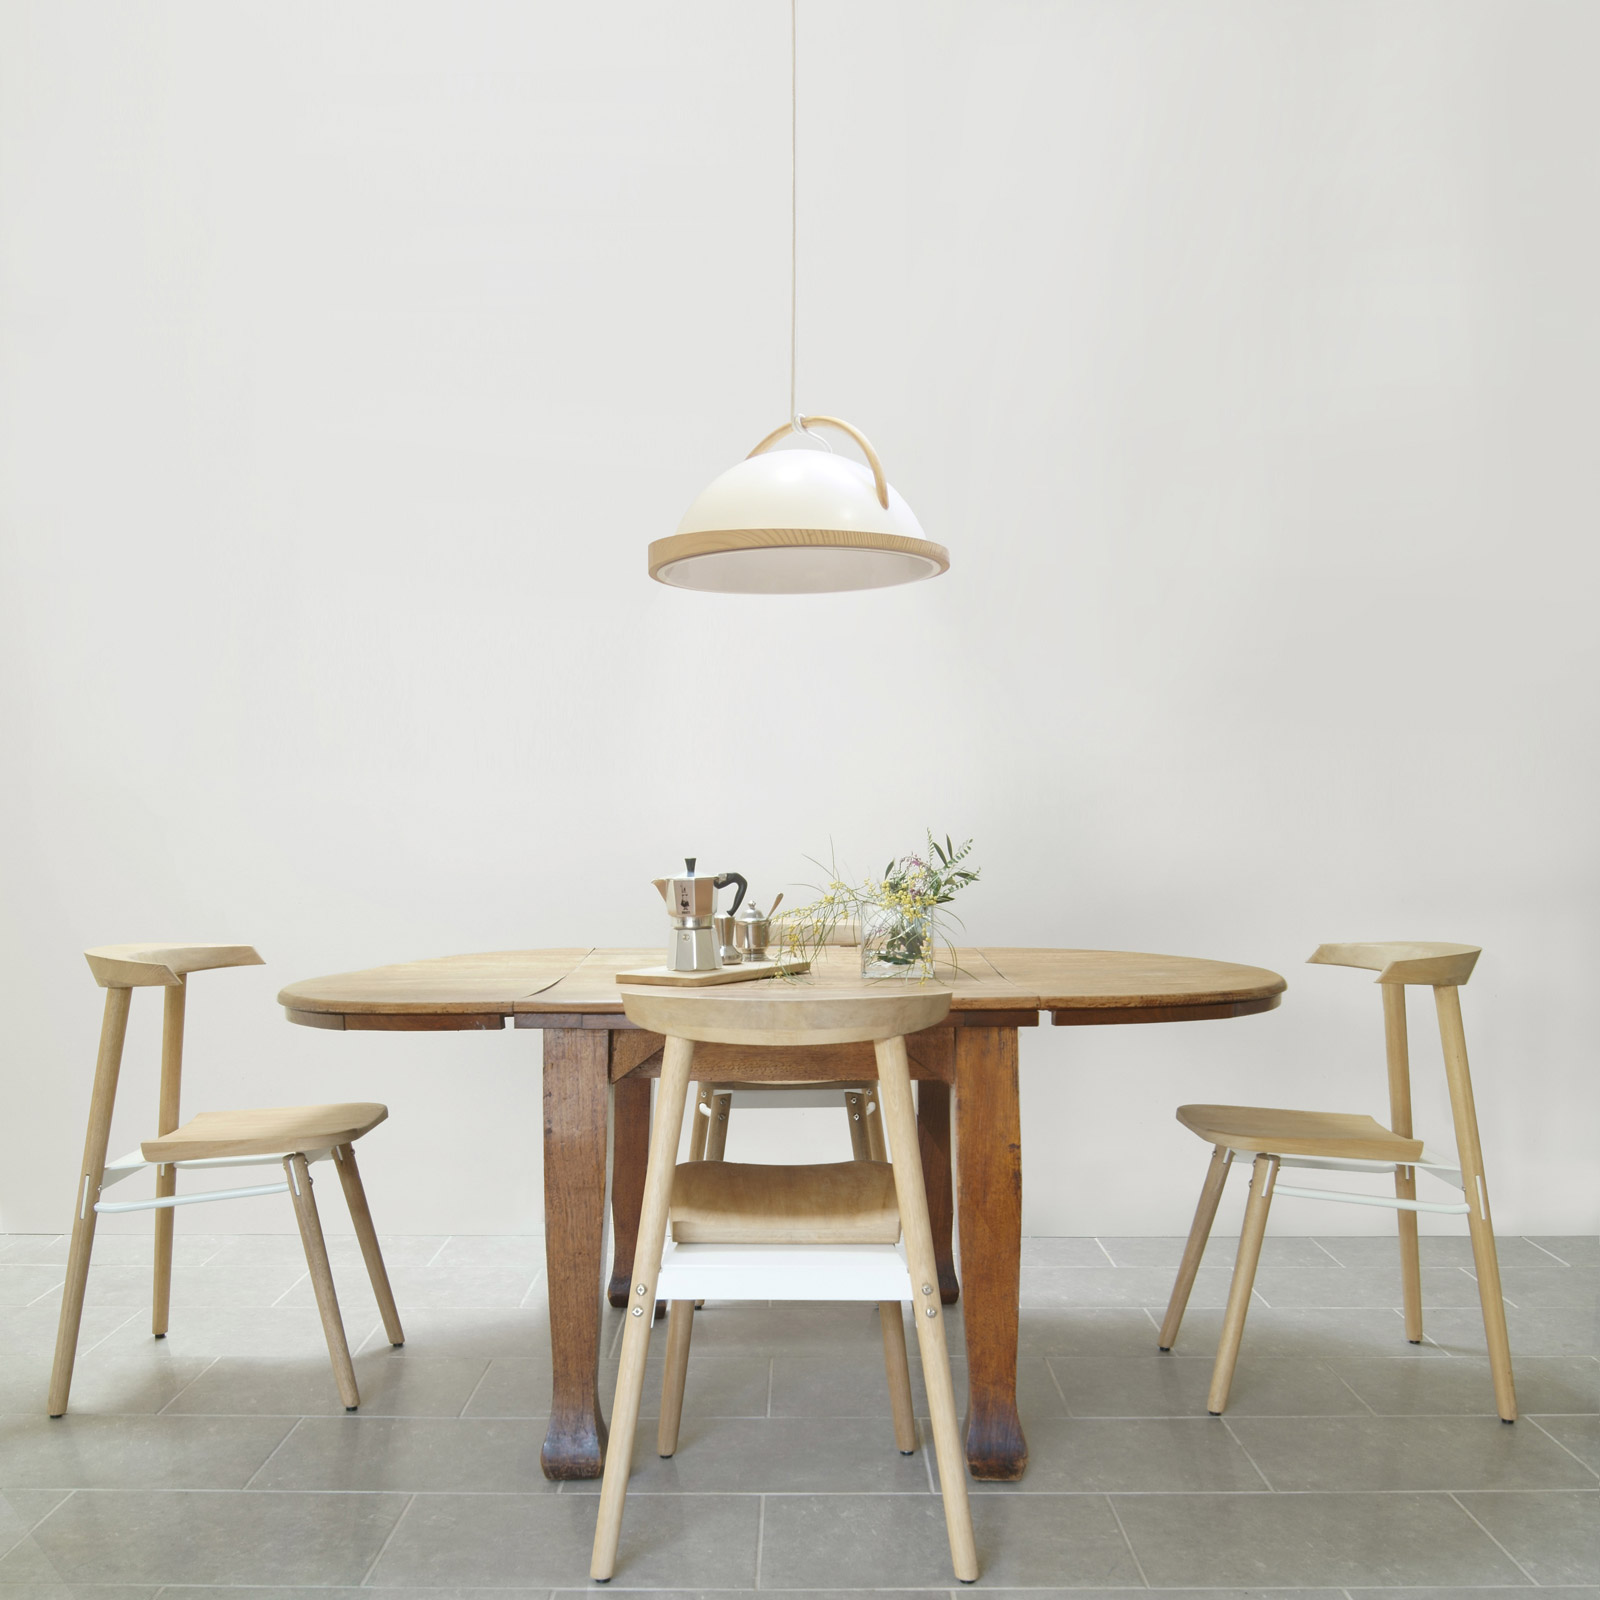 Islero dining chairs